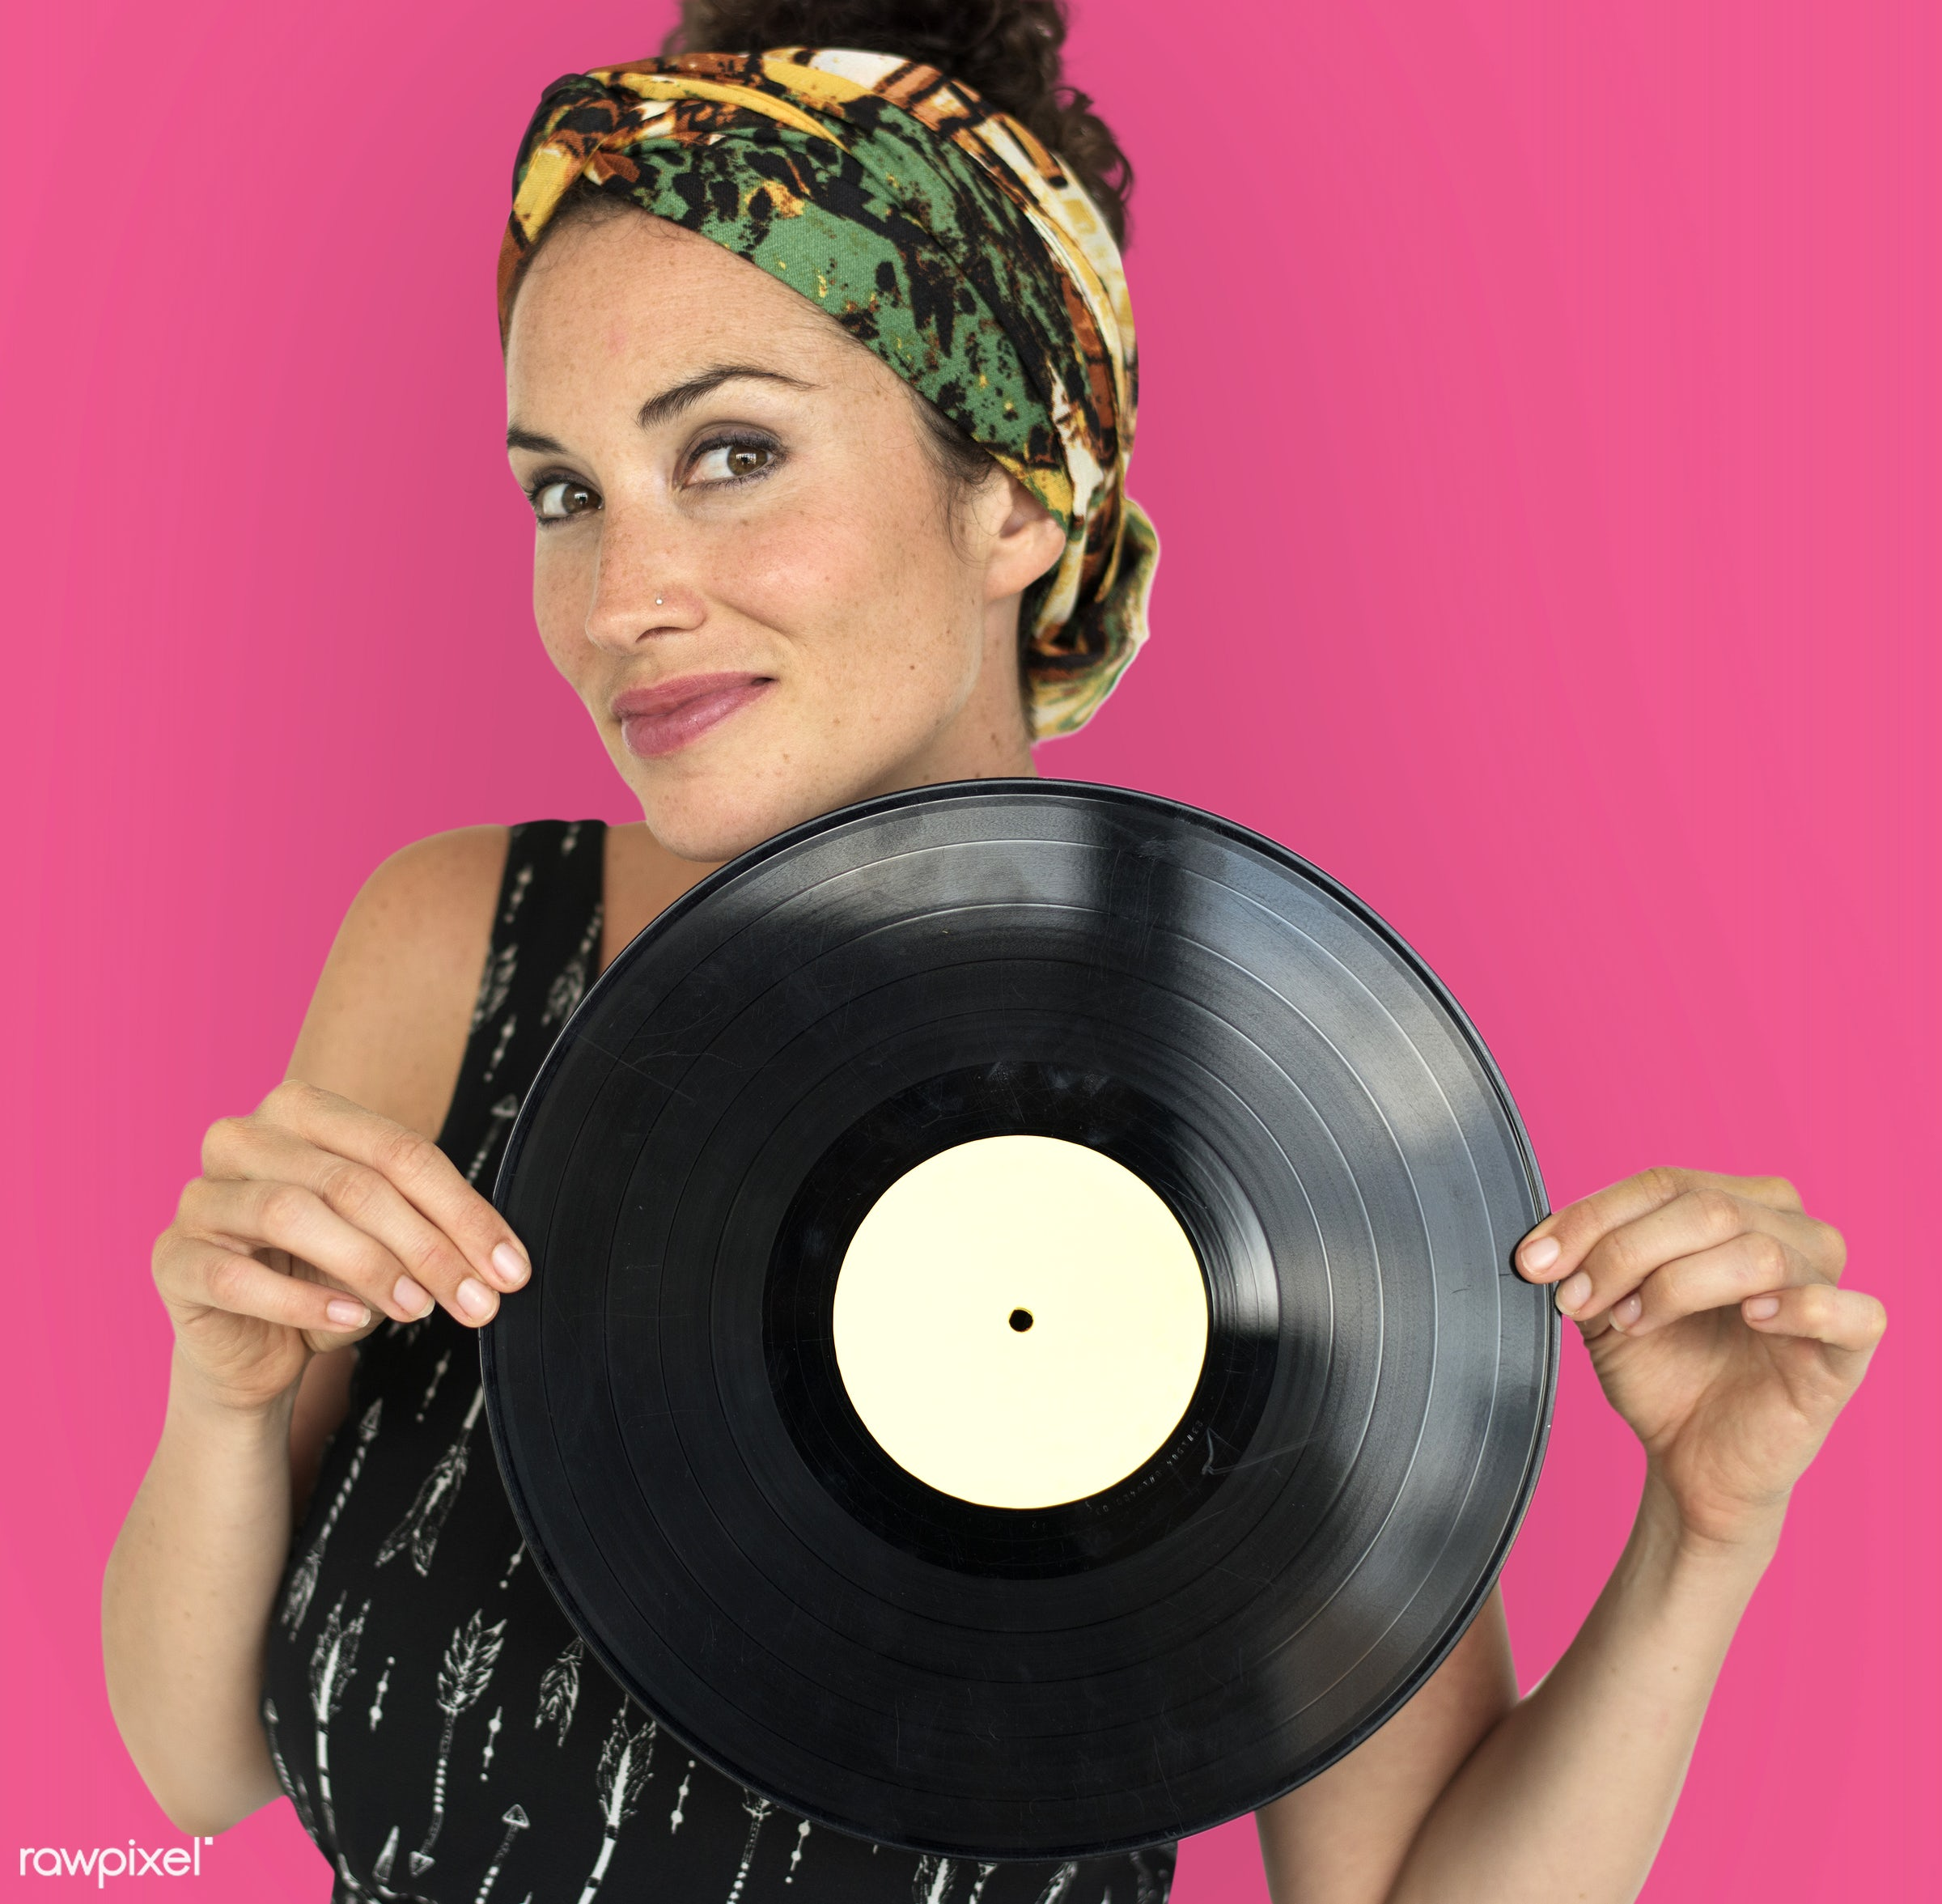 studio, model, person, retro, people, race, style, woman, casual, lifestyle, vinyl, pink, feminism, music, isolated, gesture...